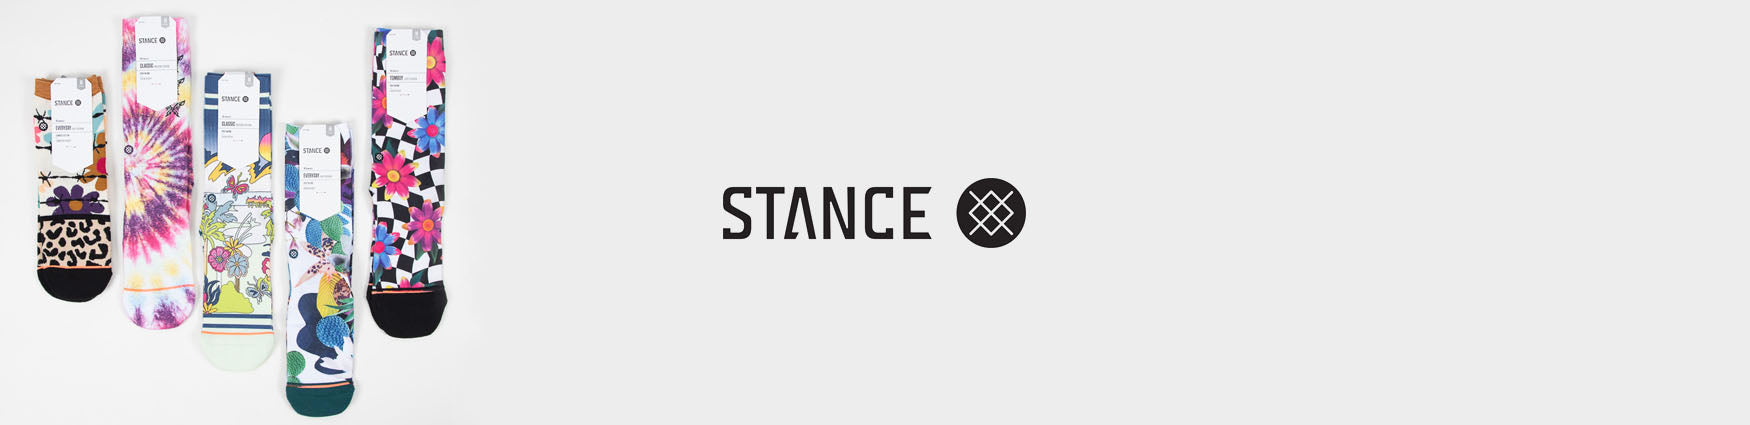 Stance Socks | Shop online from Roo's Beach UK